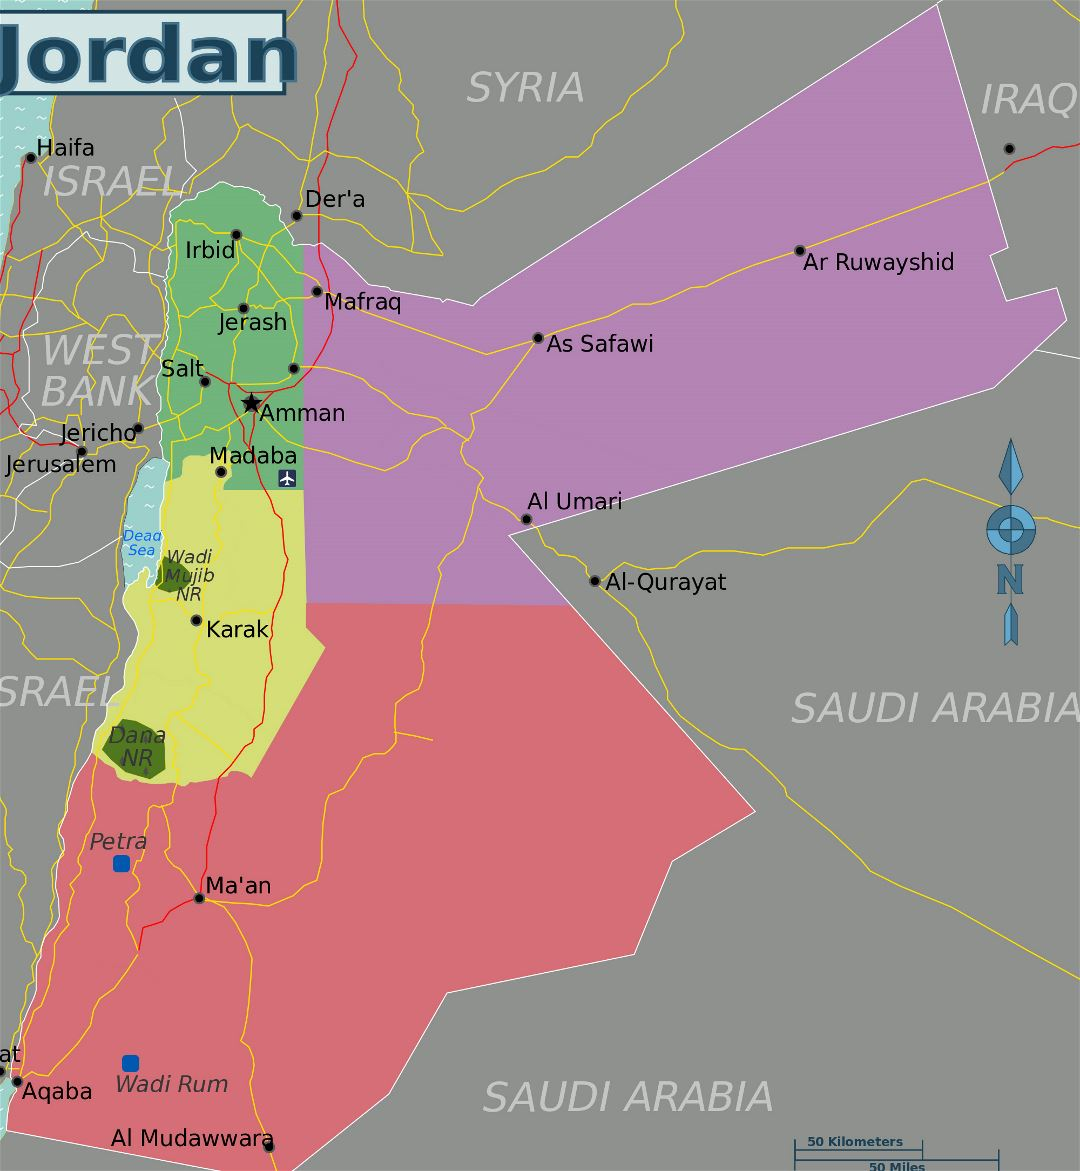 Large regions map of Jordan